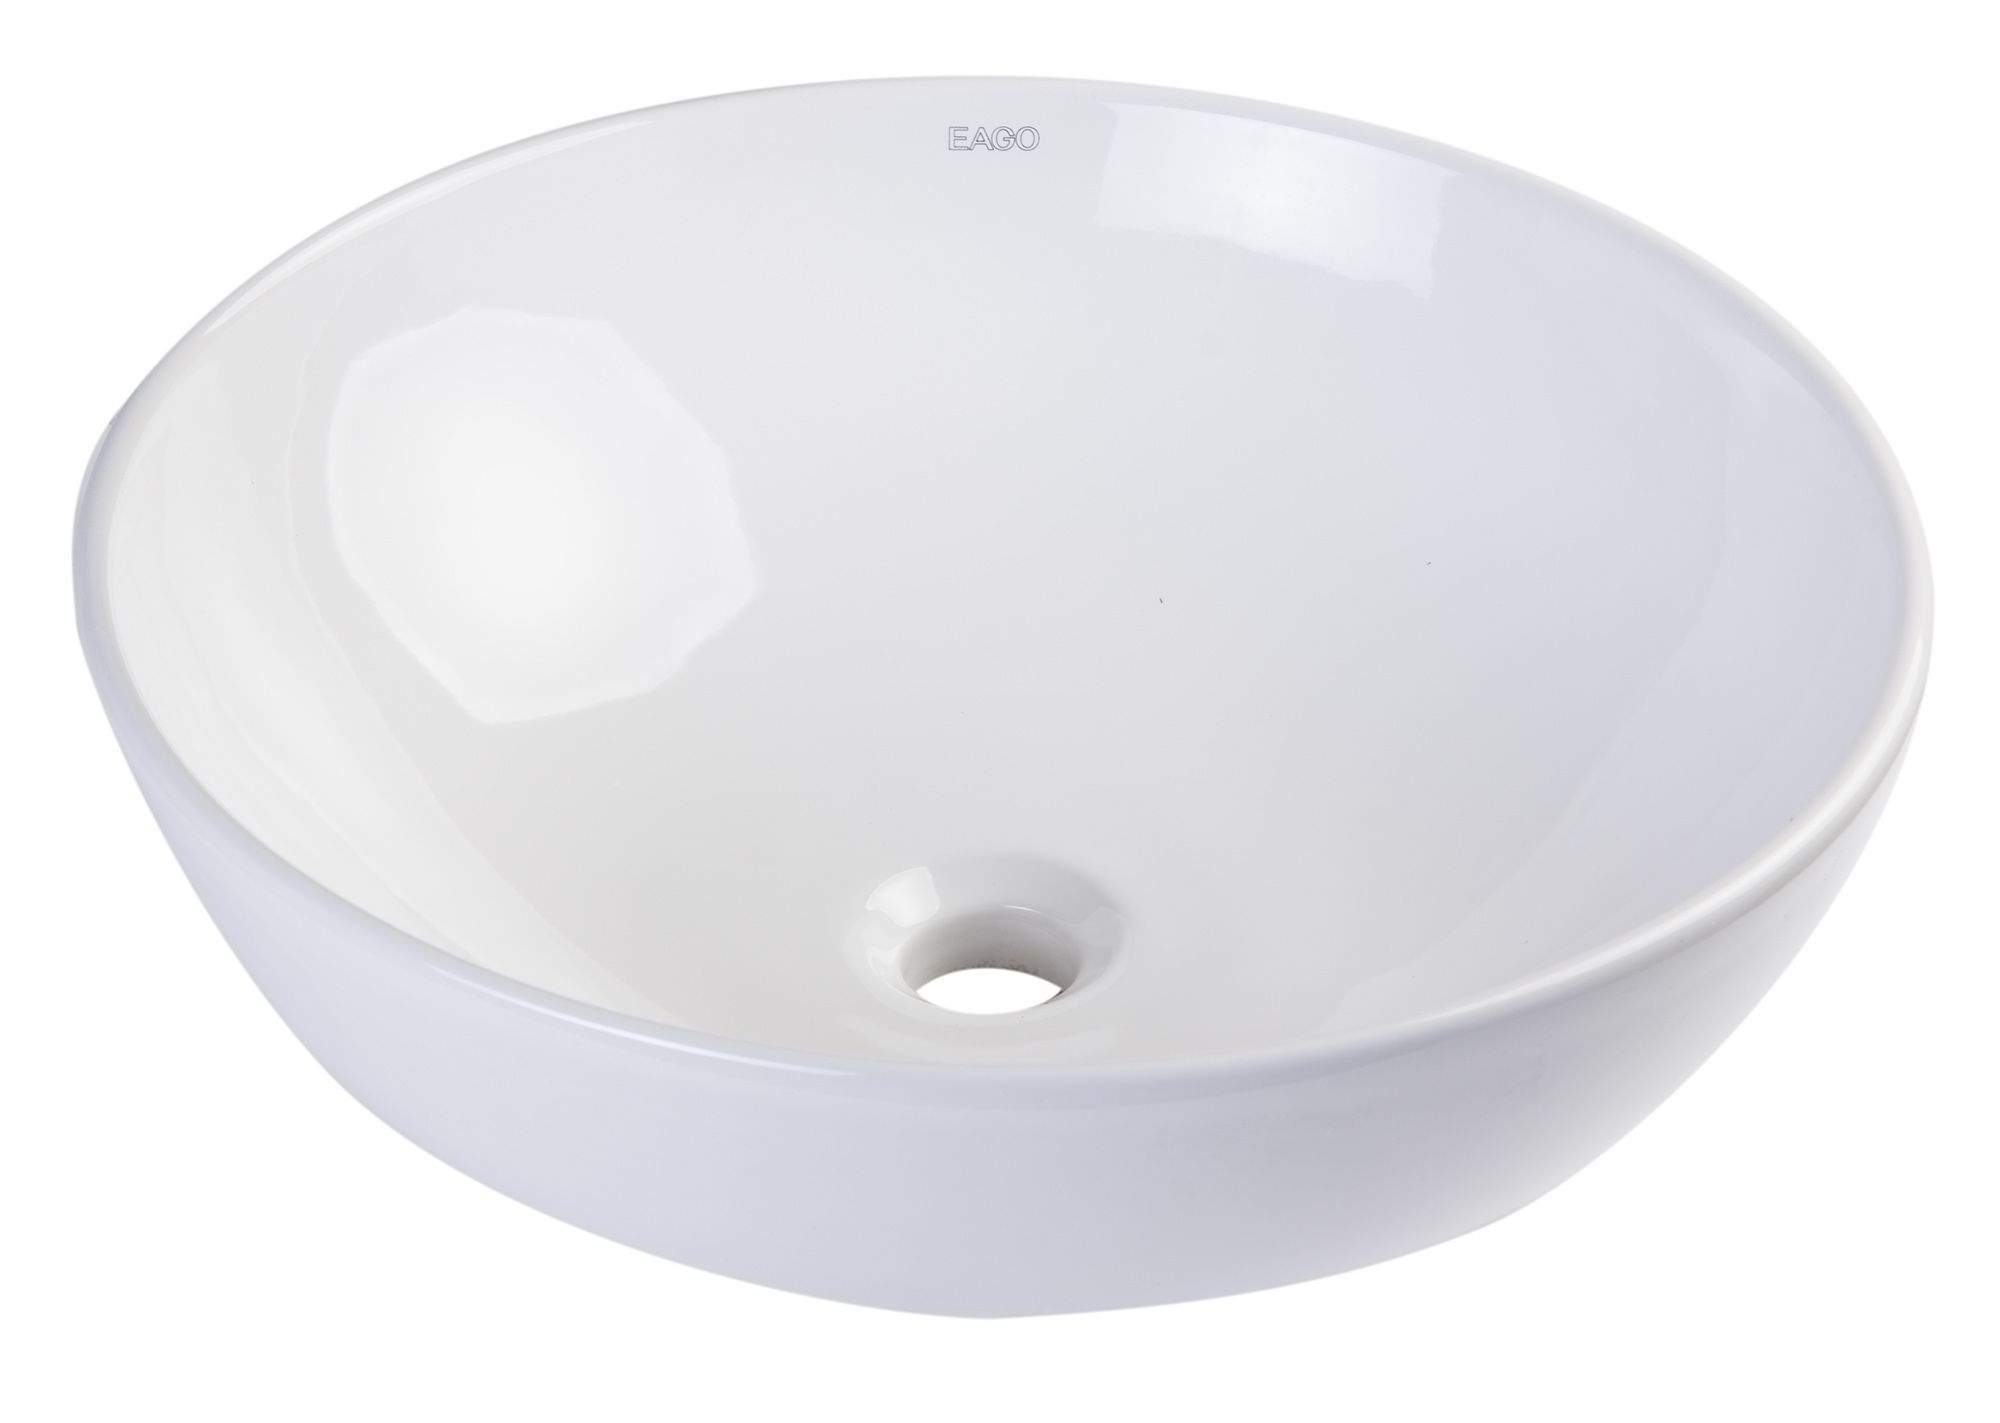 "EAGO BA351 18"" ROUND CERAMIC ABOVE MOUNT BATHROOM BASIN VESSEL SINK"